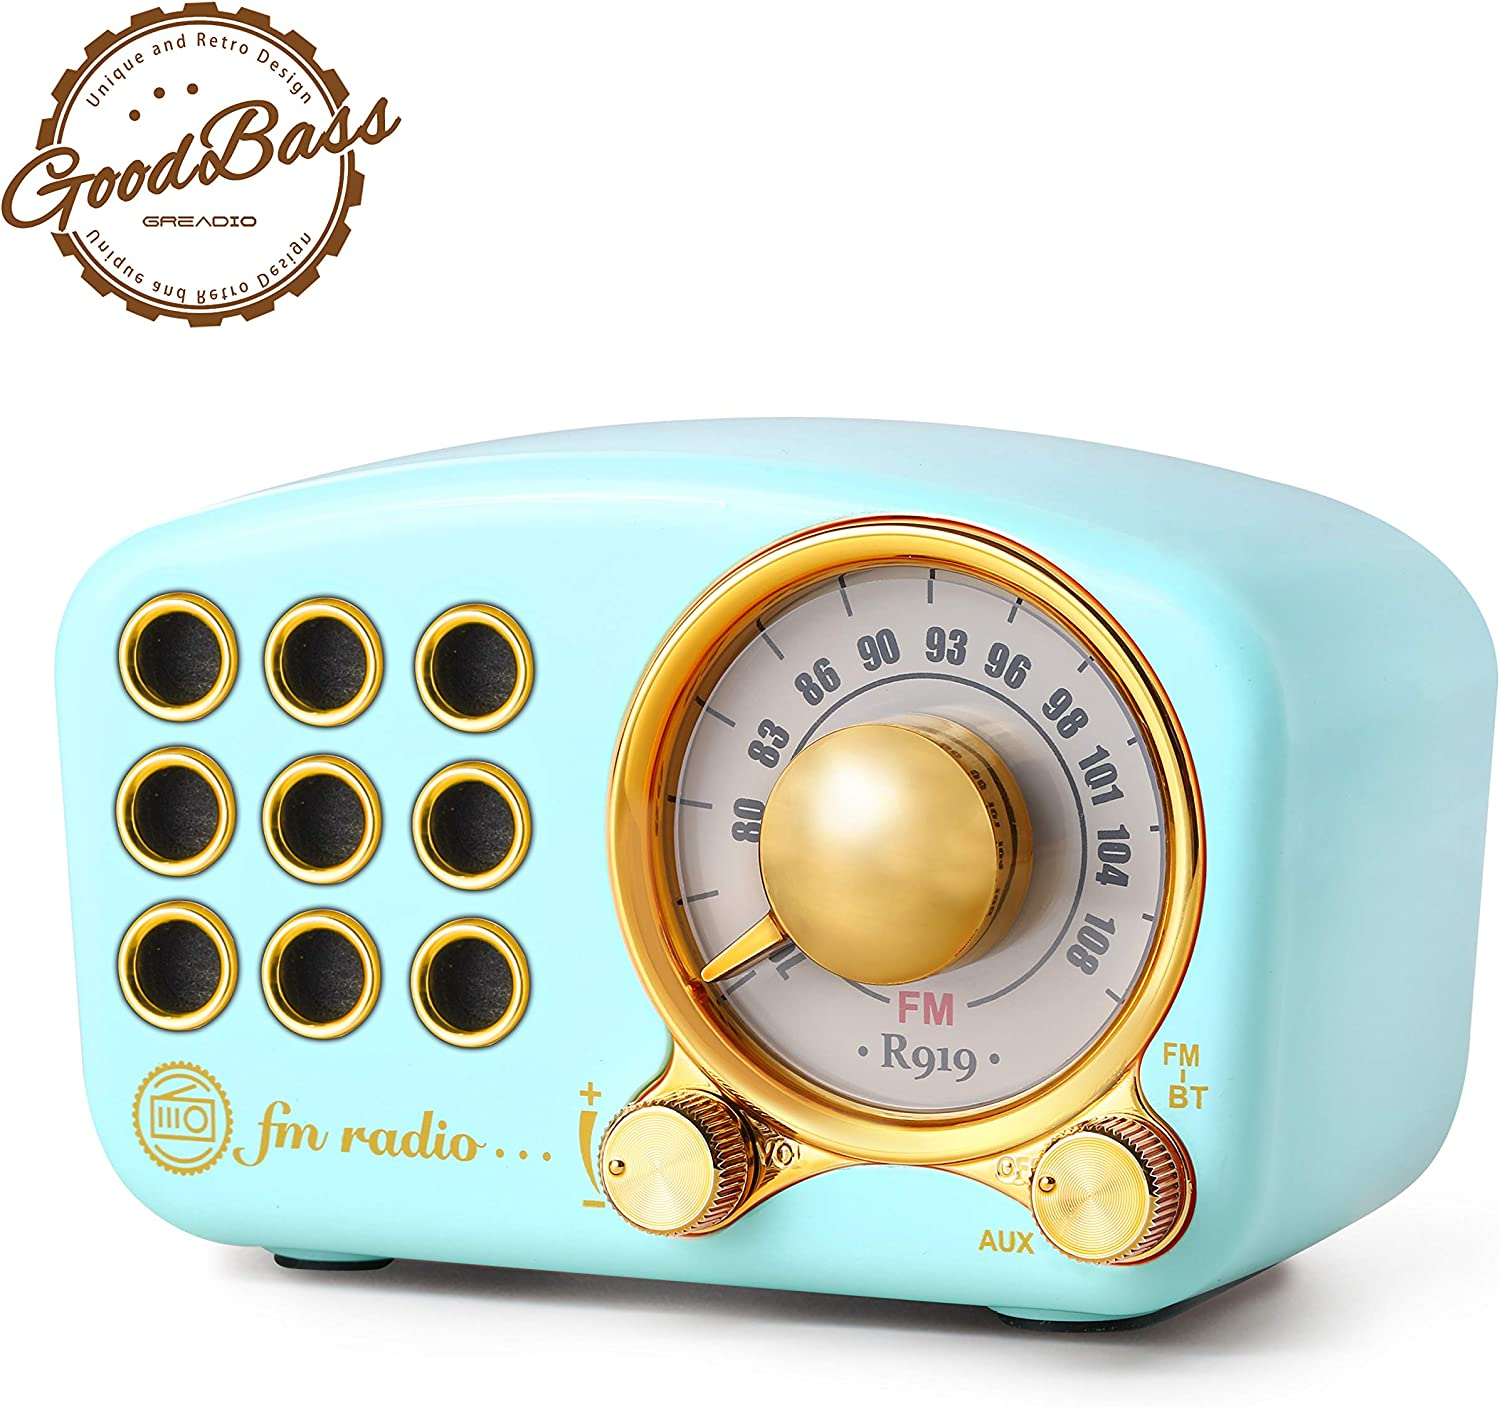 Retro Bluetooth Speaker, Vintage Radio-Greadio FM Radio with Old Fashioned Classic Style, Strong Bass Enhancement, Loud Volume, Bluetooth 4.2 Wireless Connection, TF Card and MP3 Player (Blue)